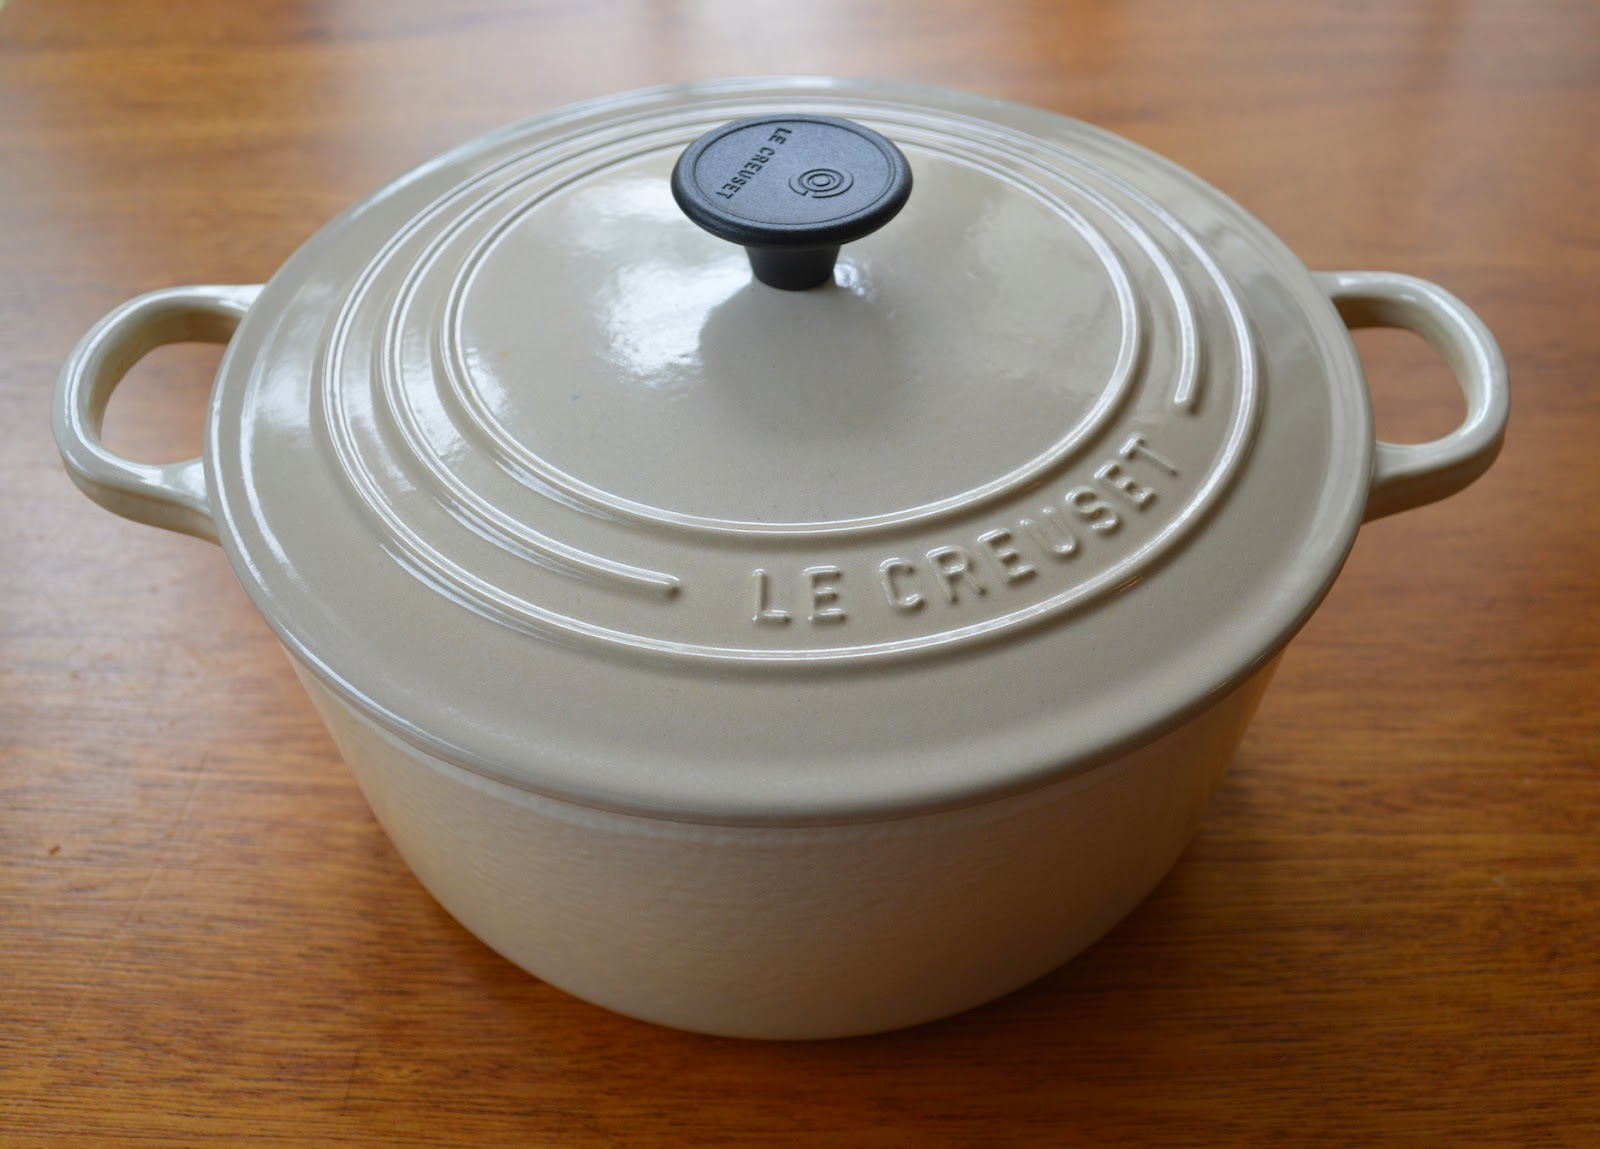 Amusing piece cleaning vintage le creuset opinion you